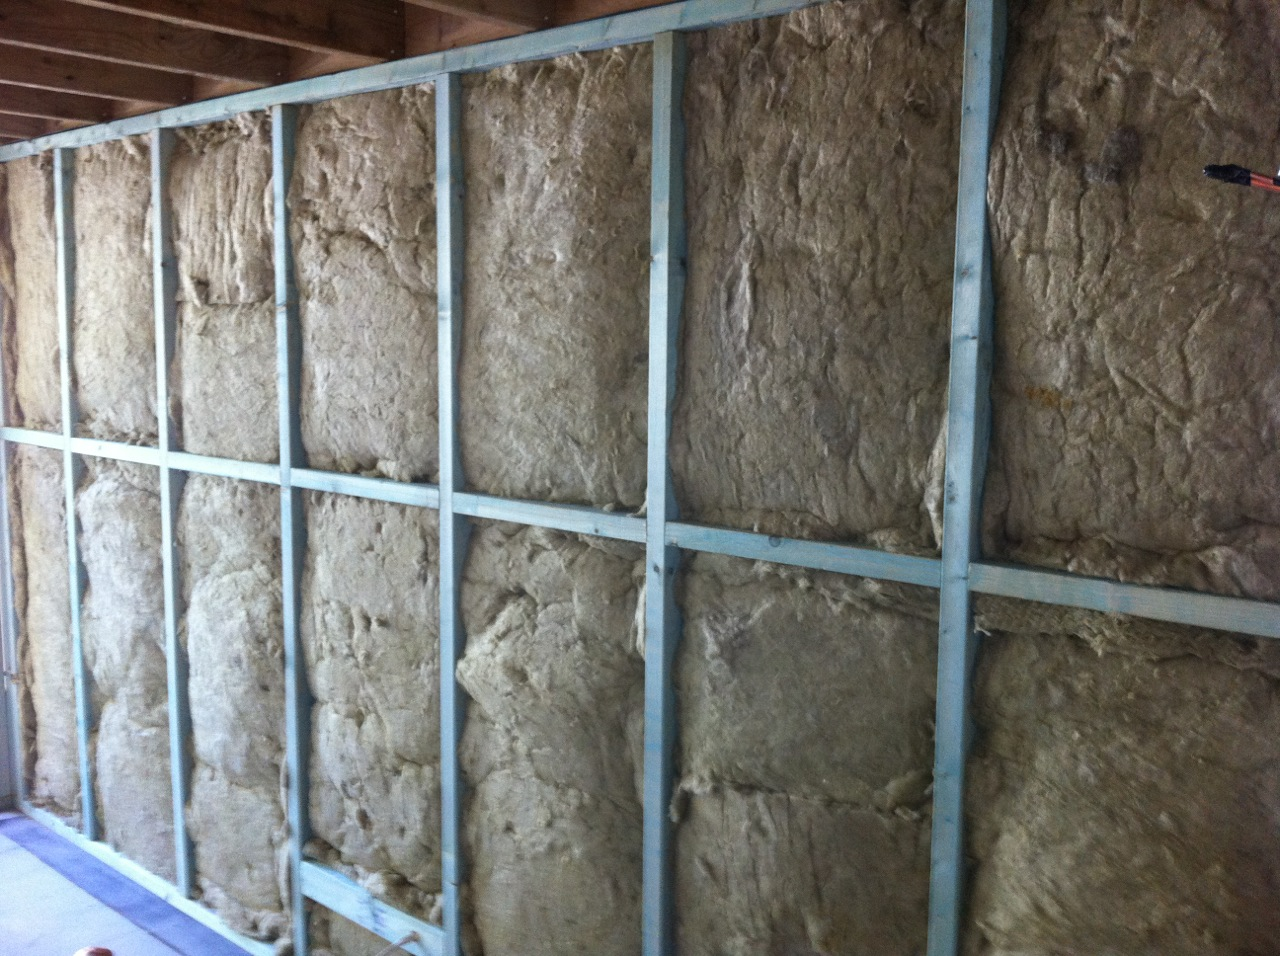 wall wallsdiy walls material do and soundproof insulation roomstudio soundproofing you a pin sound how room